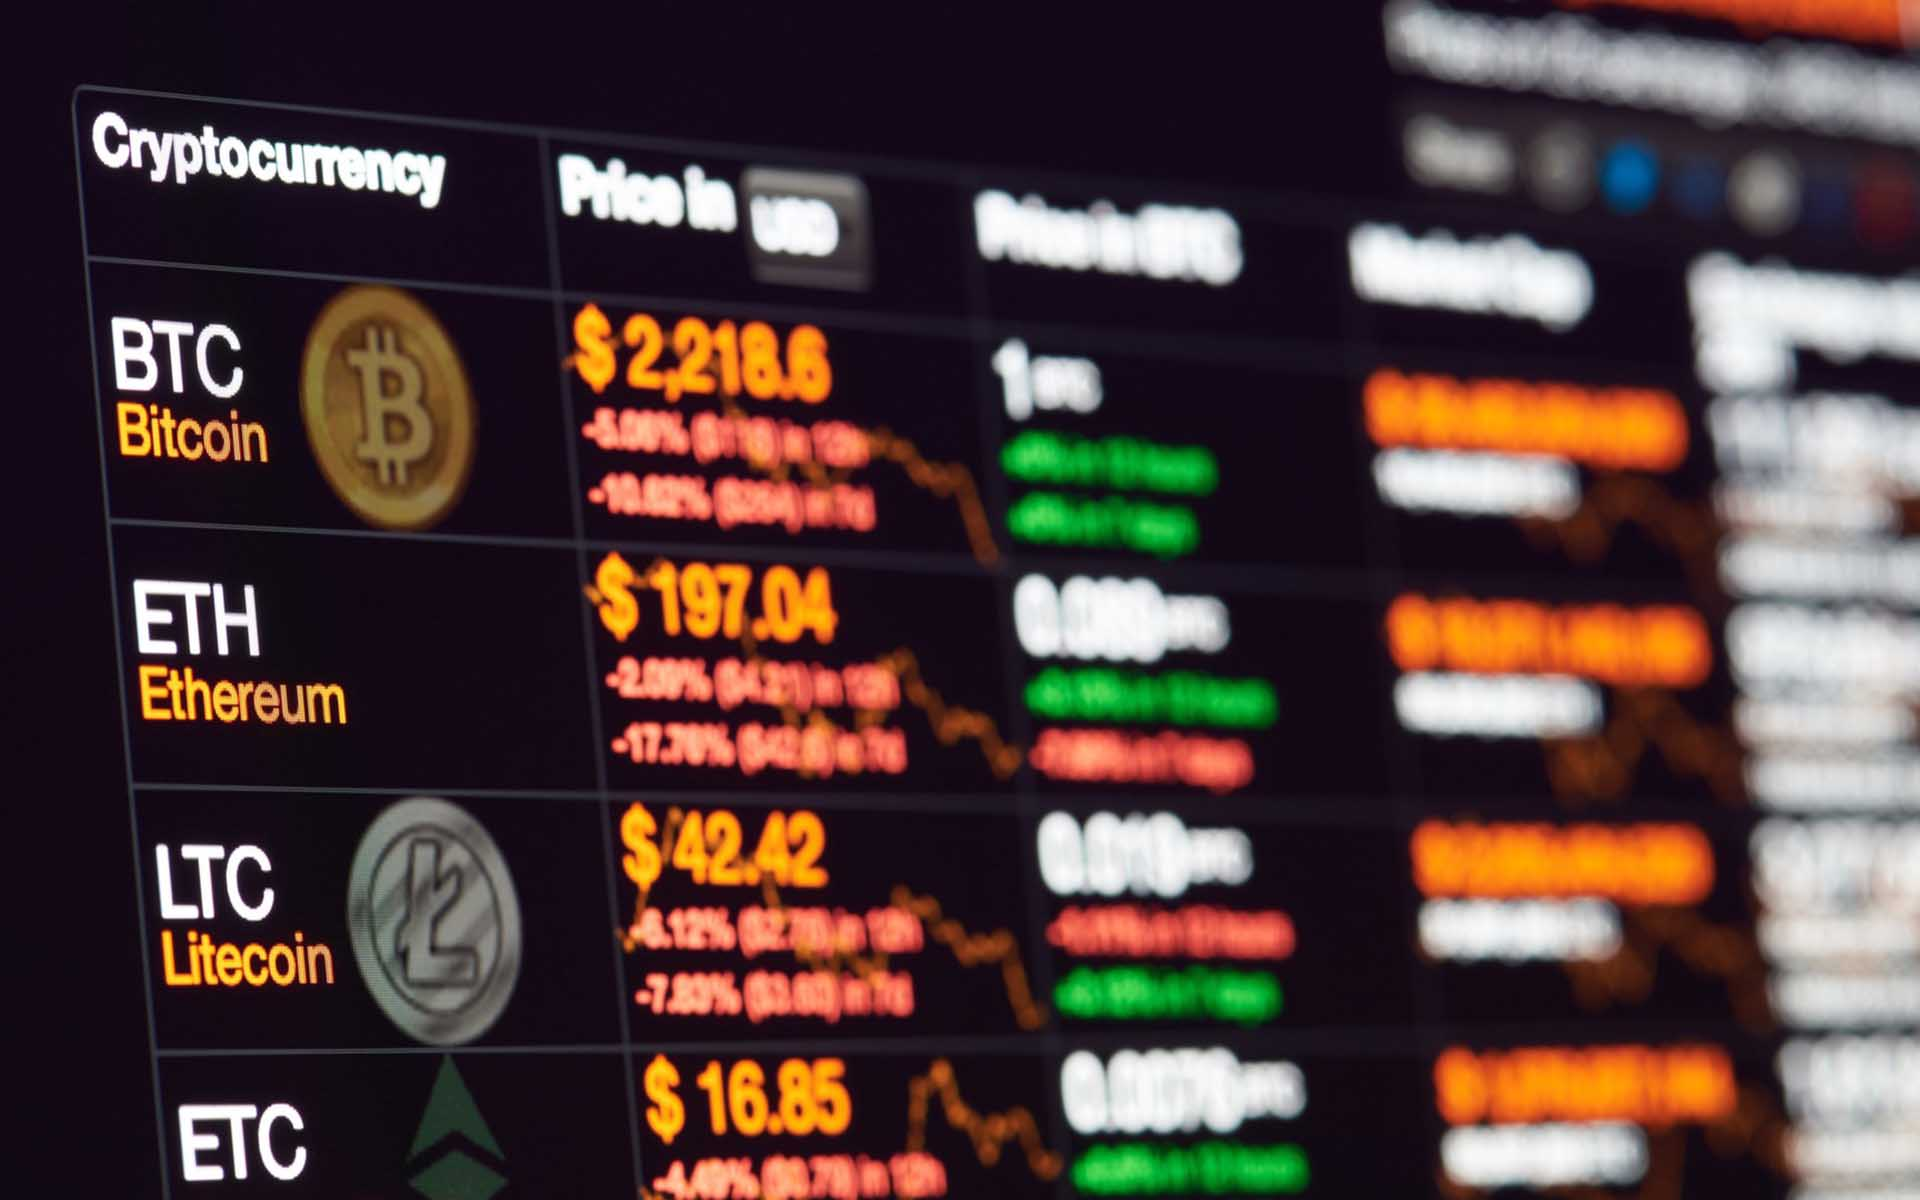 Investing In Cryptocurrency Likened To Investing In The Internet 10 Years Ago